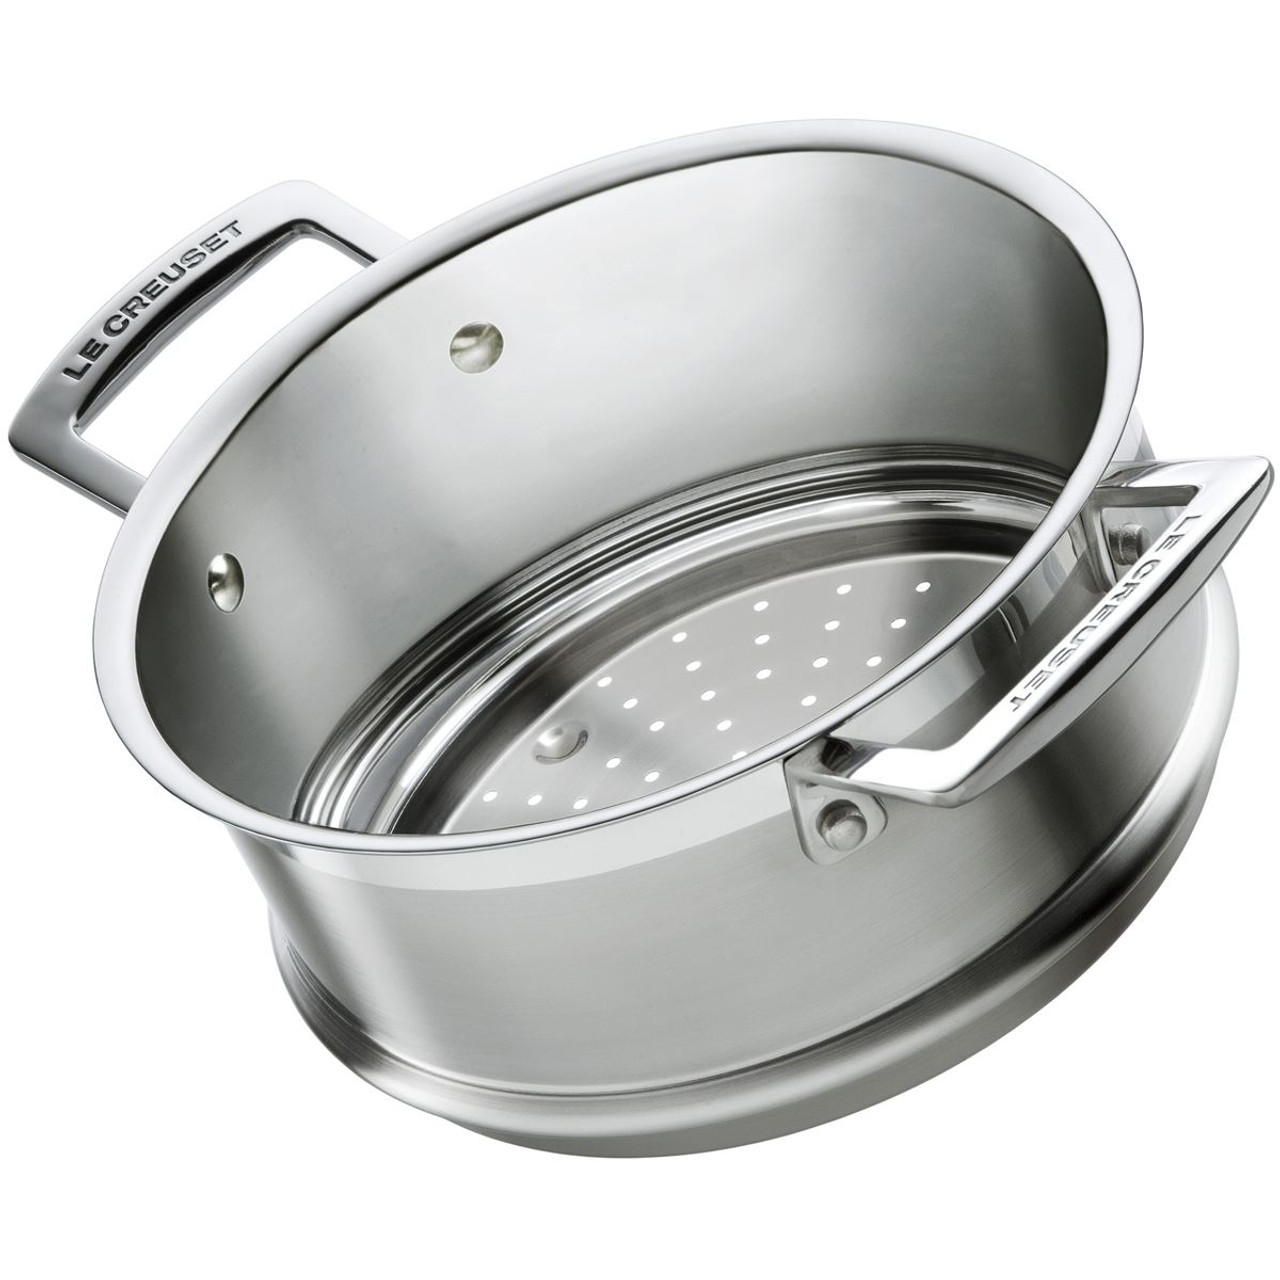 Le Creuset 20cm 3 Ply Stainless Steel Steamer